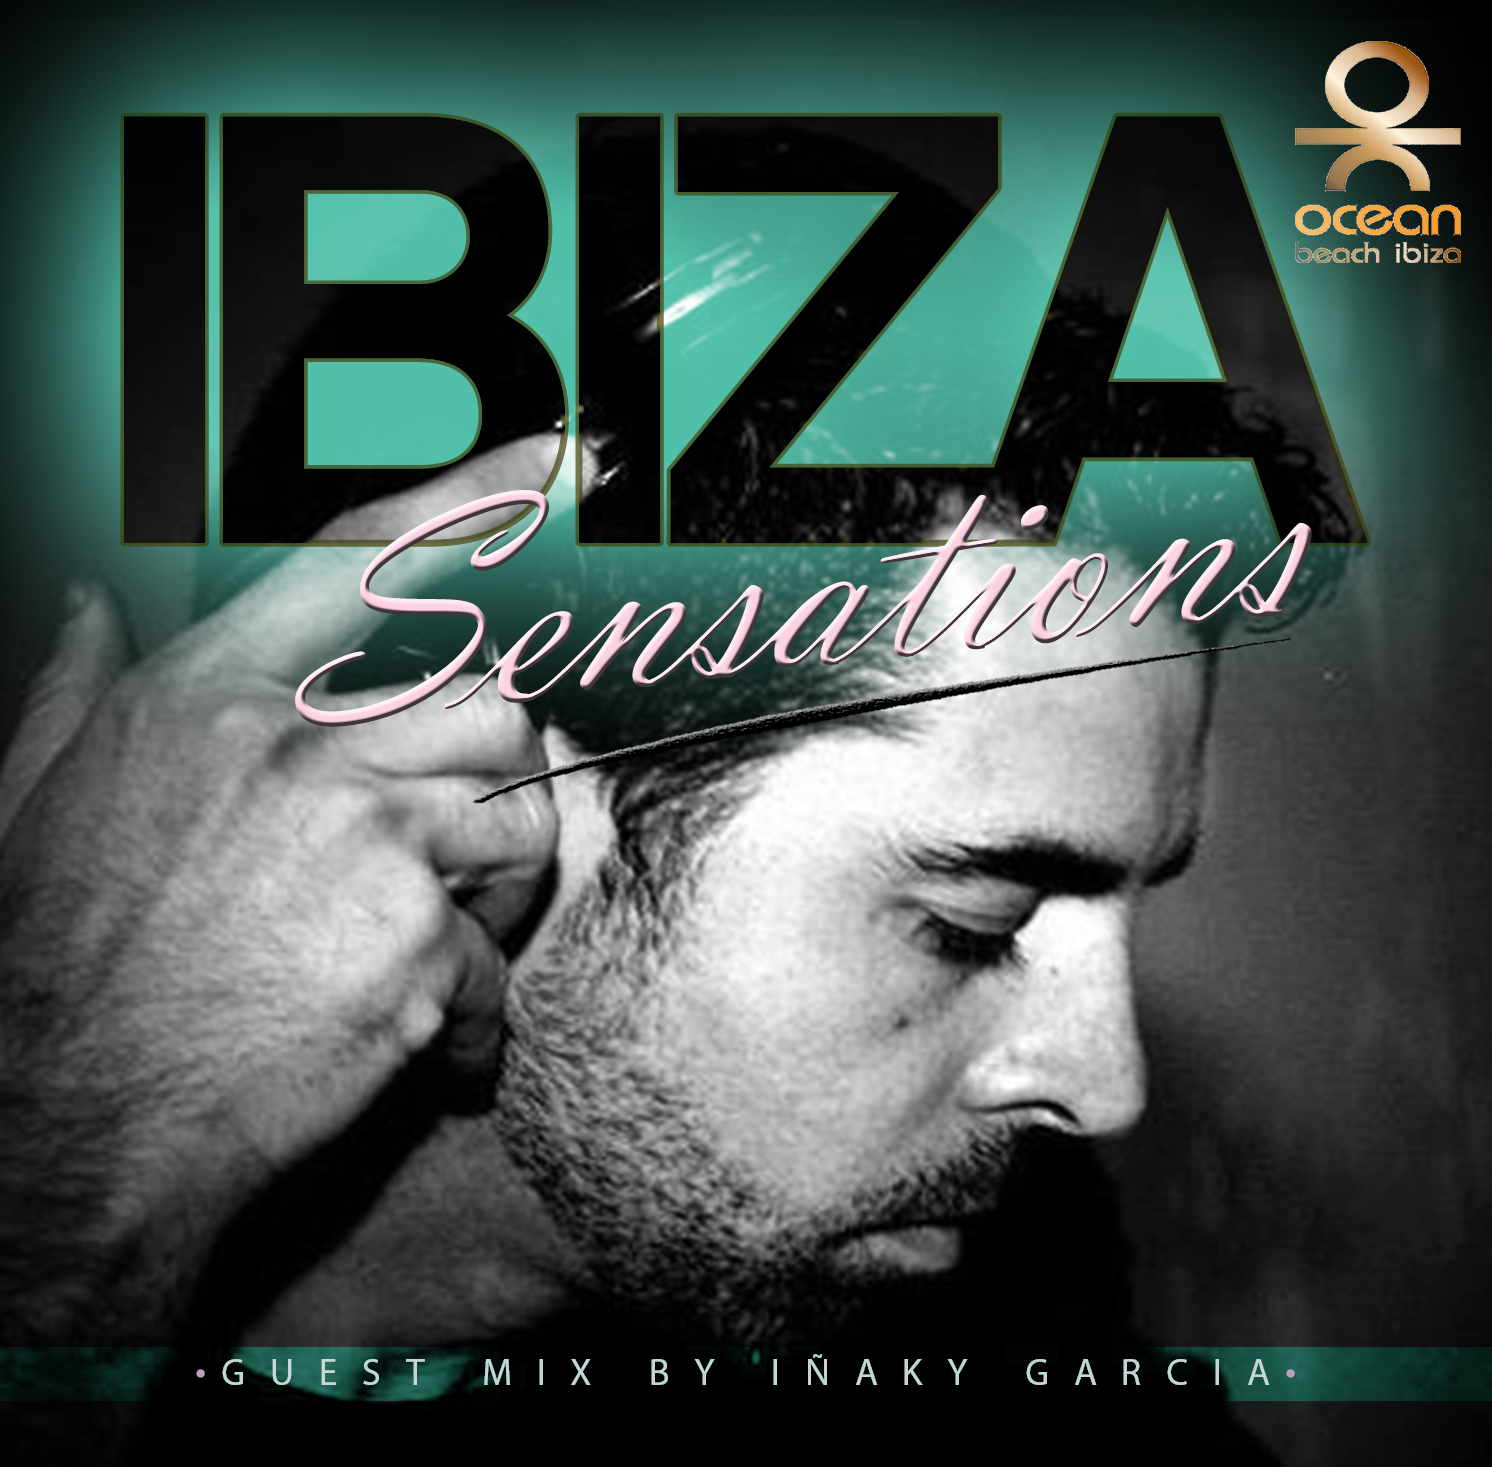 Artwork for Ibiza Sensations 70 Guest Mix by Iñaky Garcia